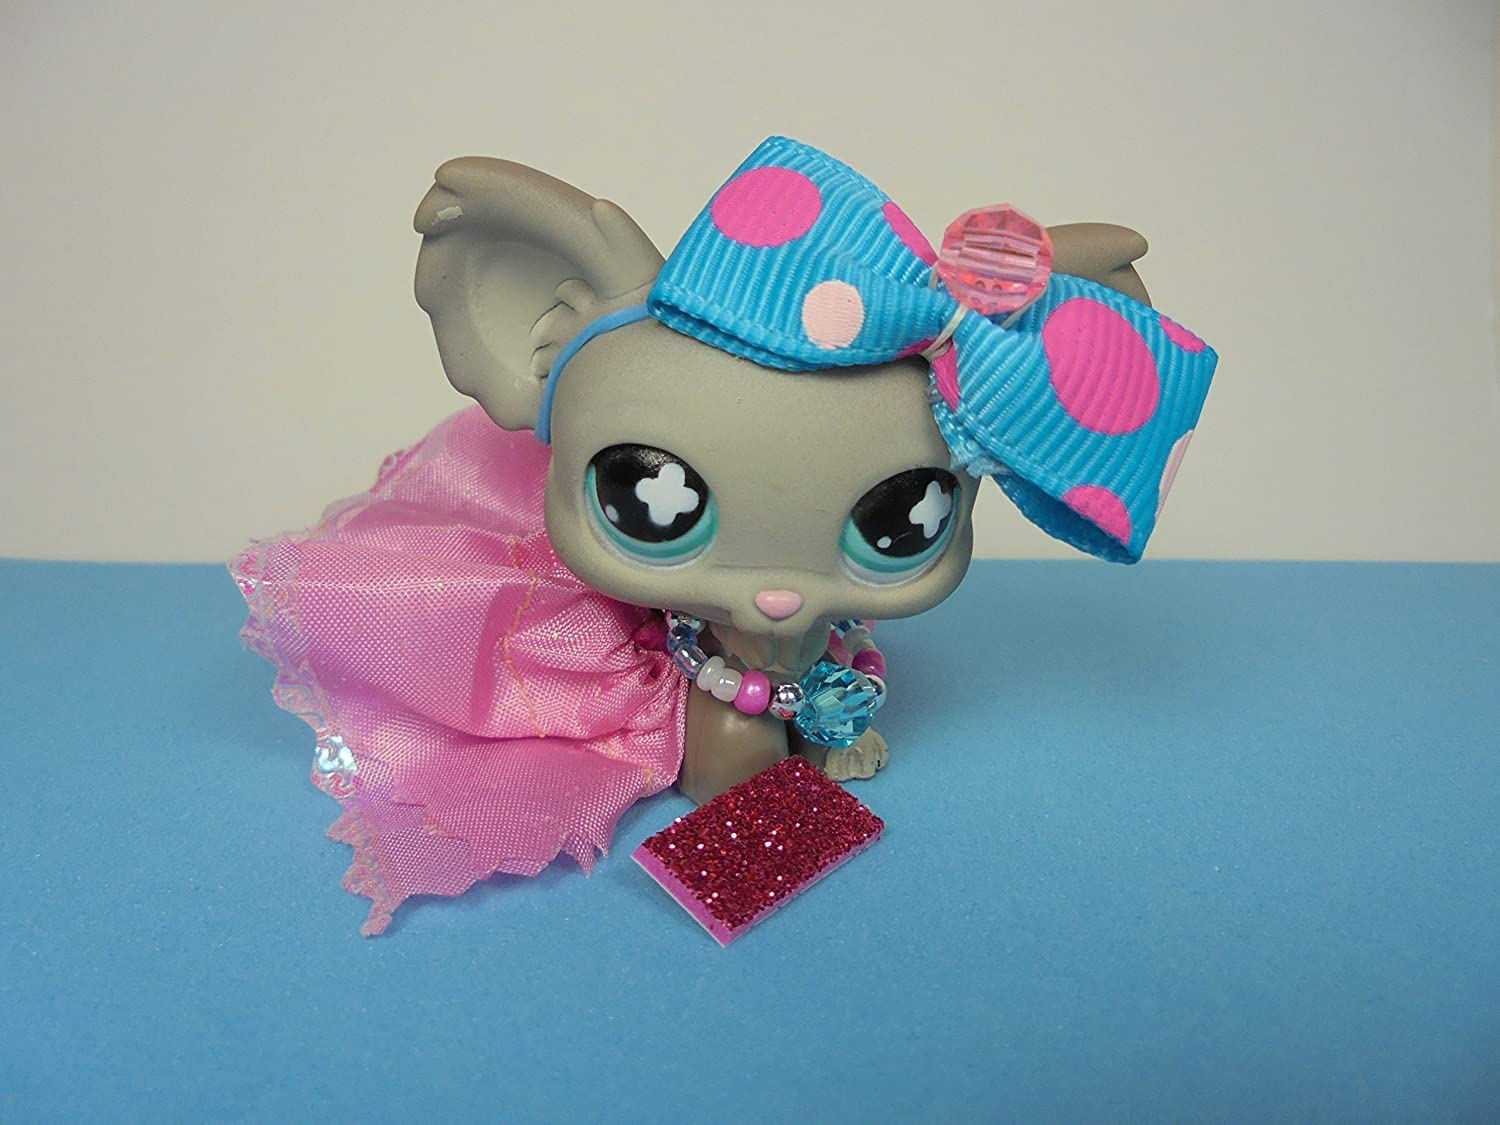 LPS Accessories Clothes Littlest Pet Shop Lot 4 PC GRAB BAG Random Custom Bow Skirt Necklace/Collar Phone NO PET INCLUDED